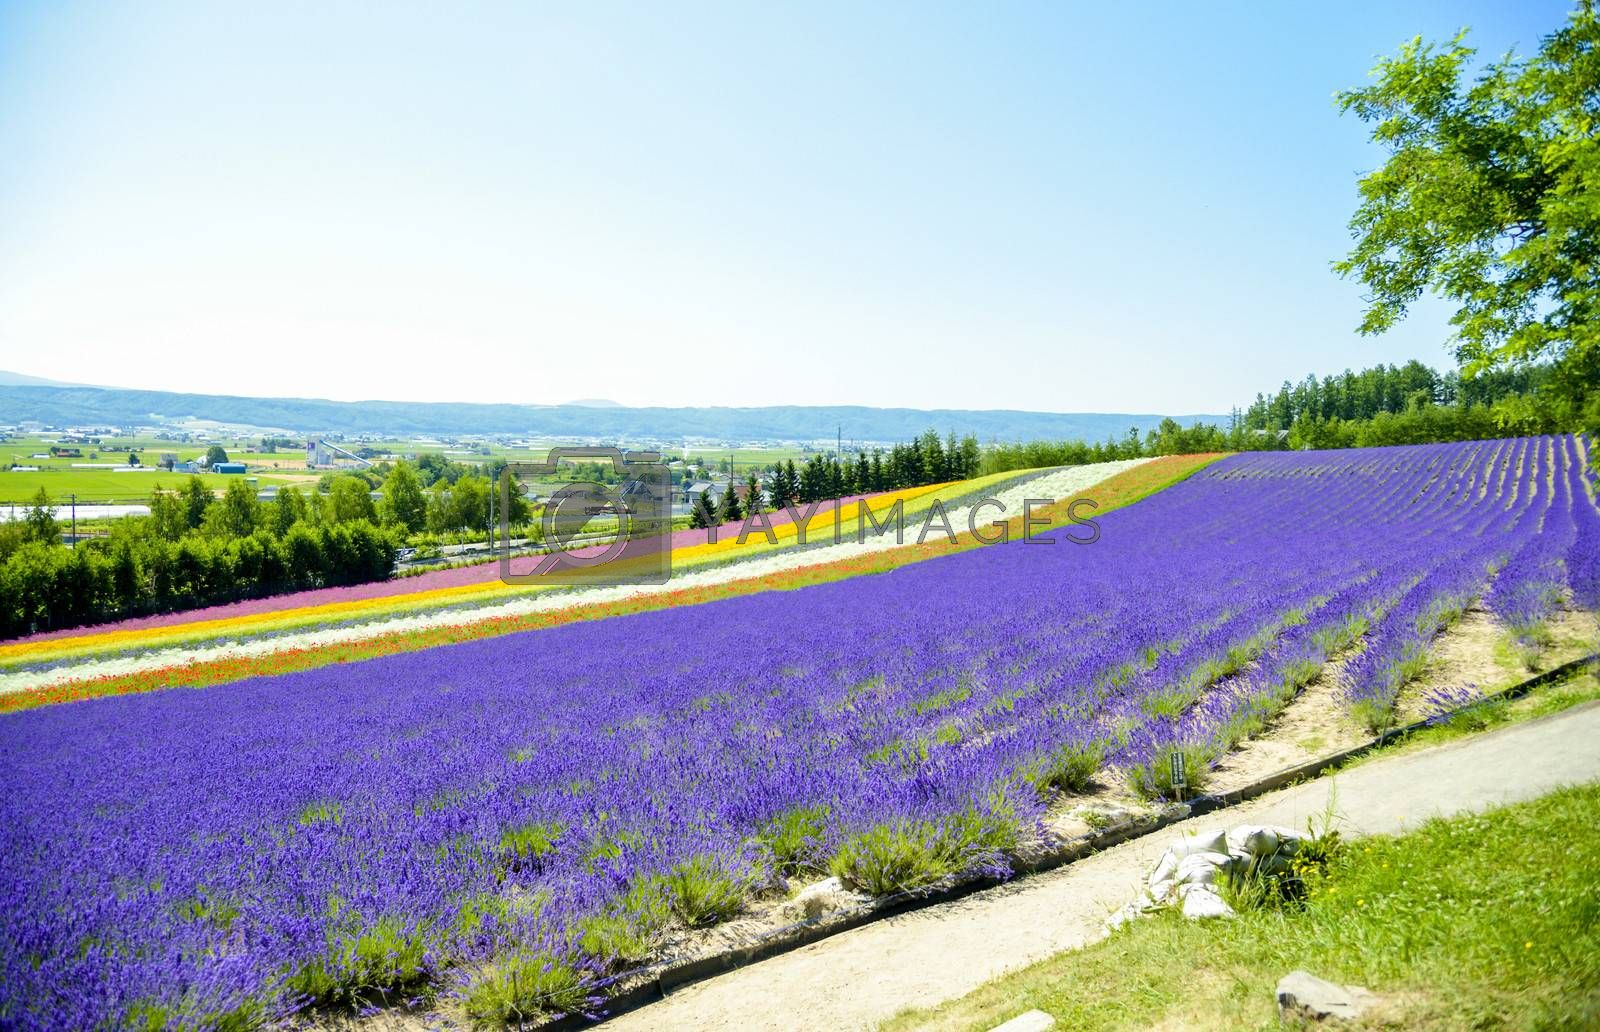 Lavender and colorful flower in the field5